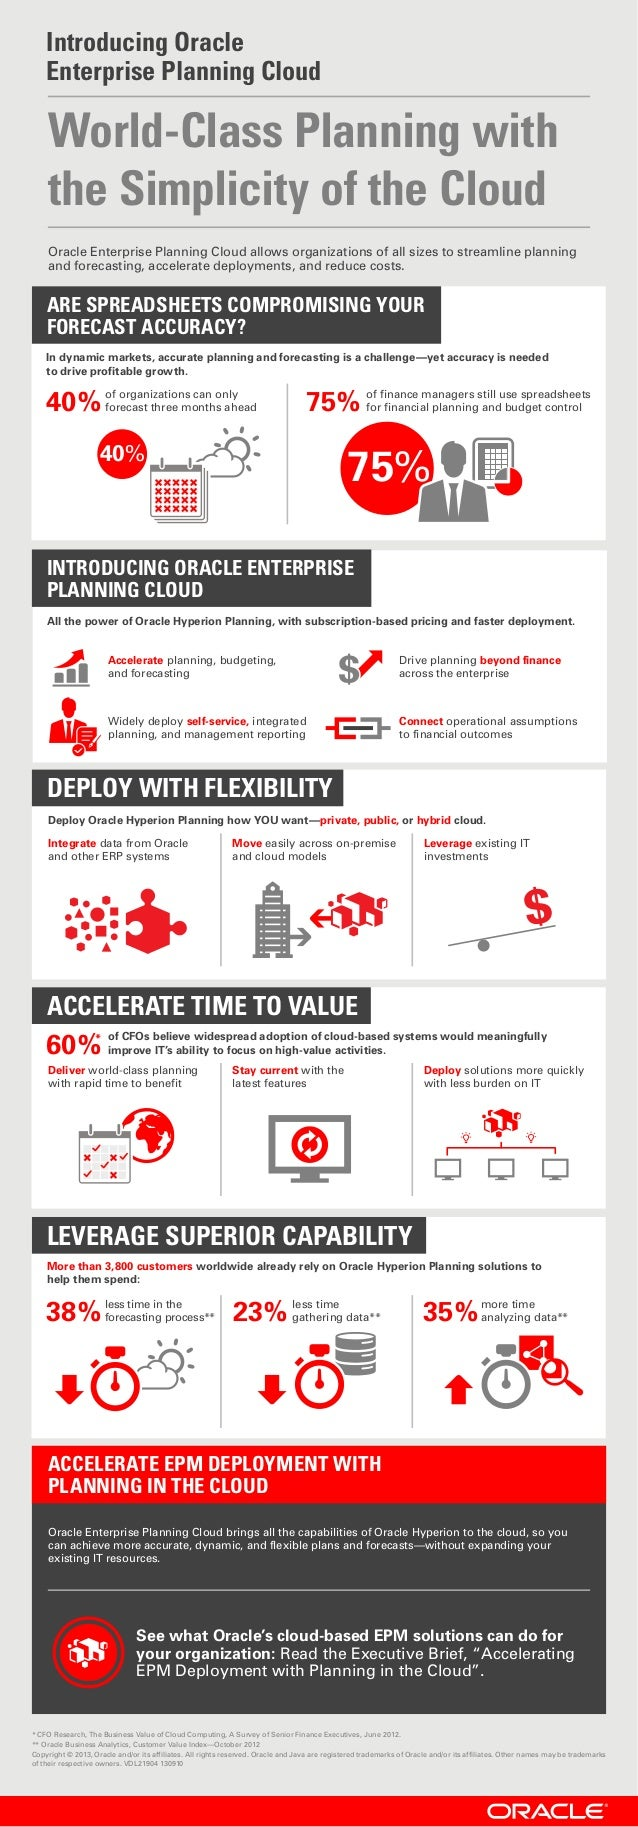 * CFO Research, The Business Value of Cloud Computing, A Survey of Senior Finance Executives, June 2012. ** Oracle Busines...